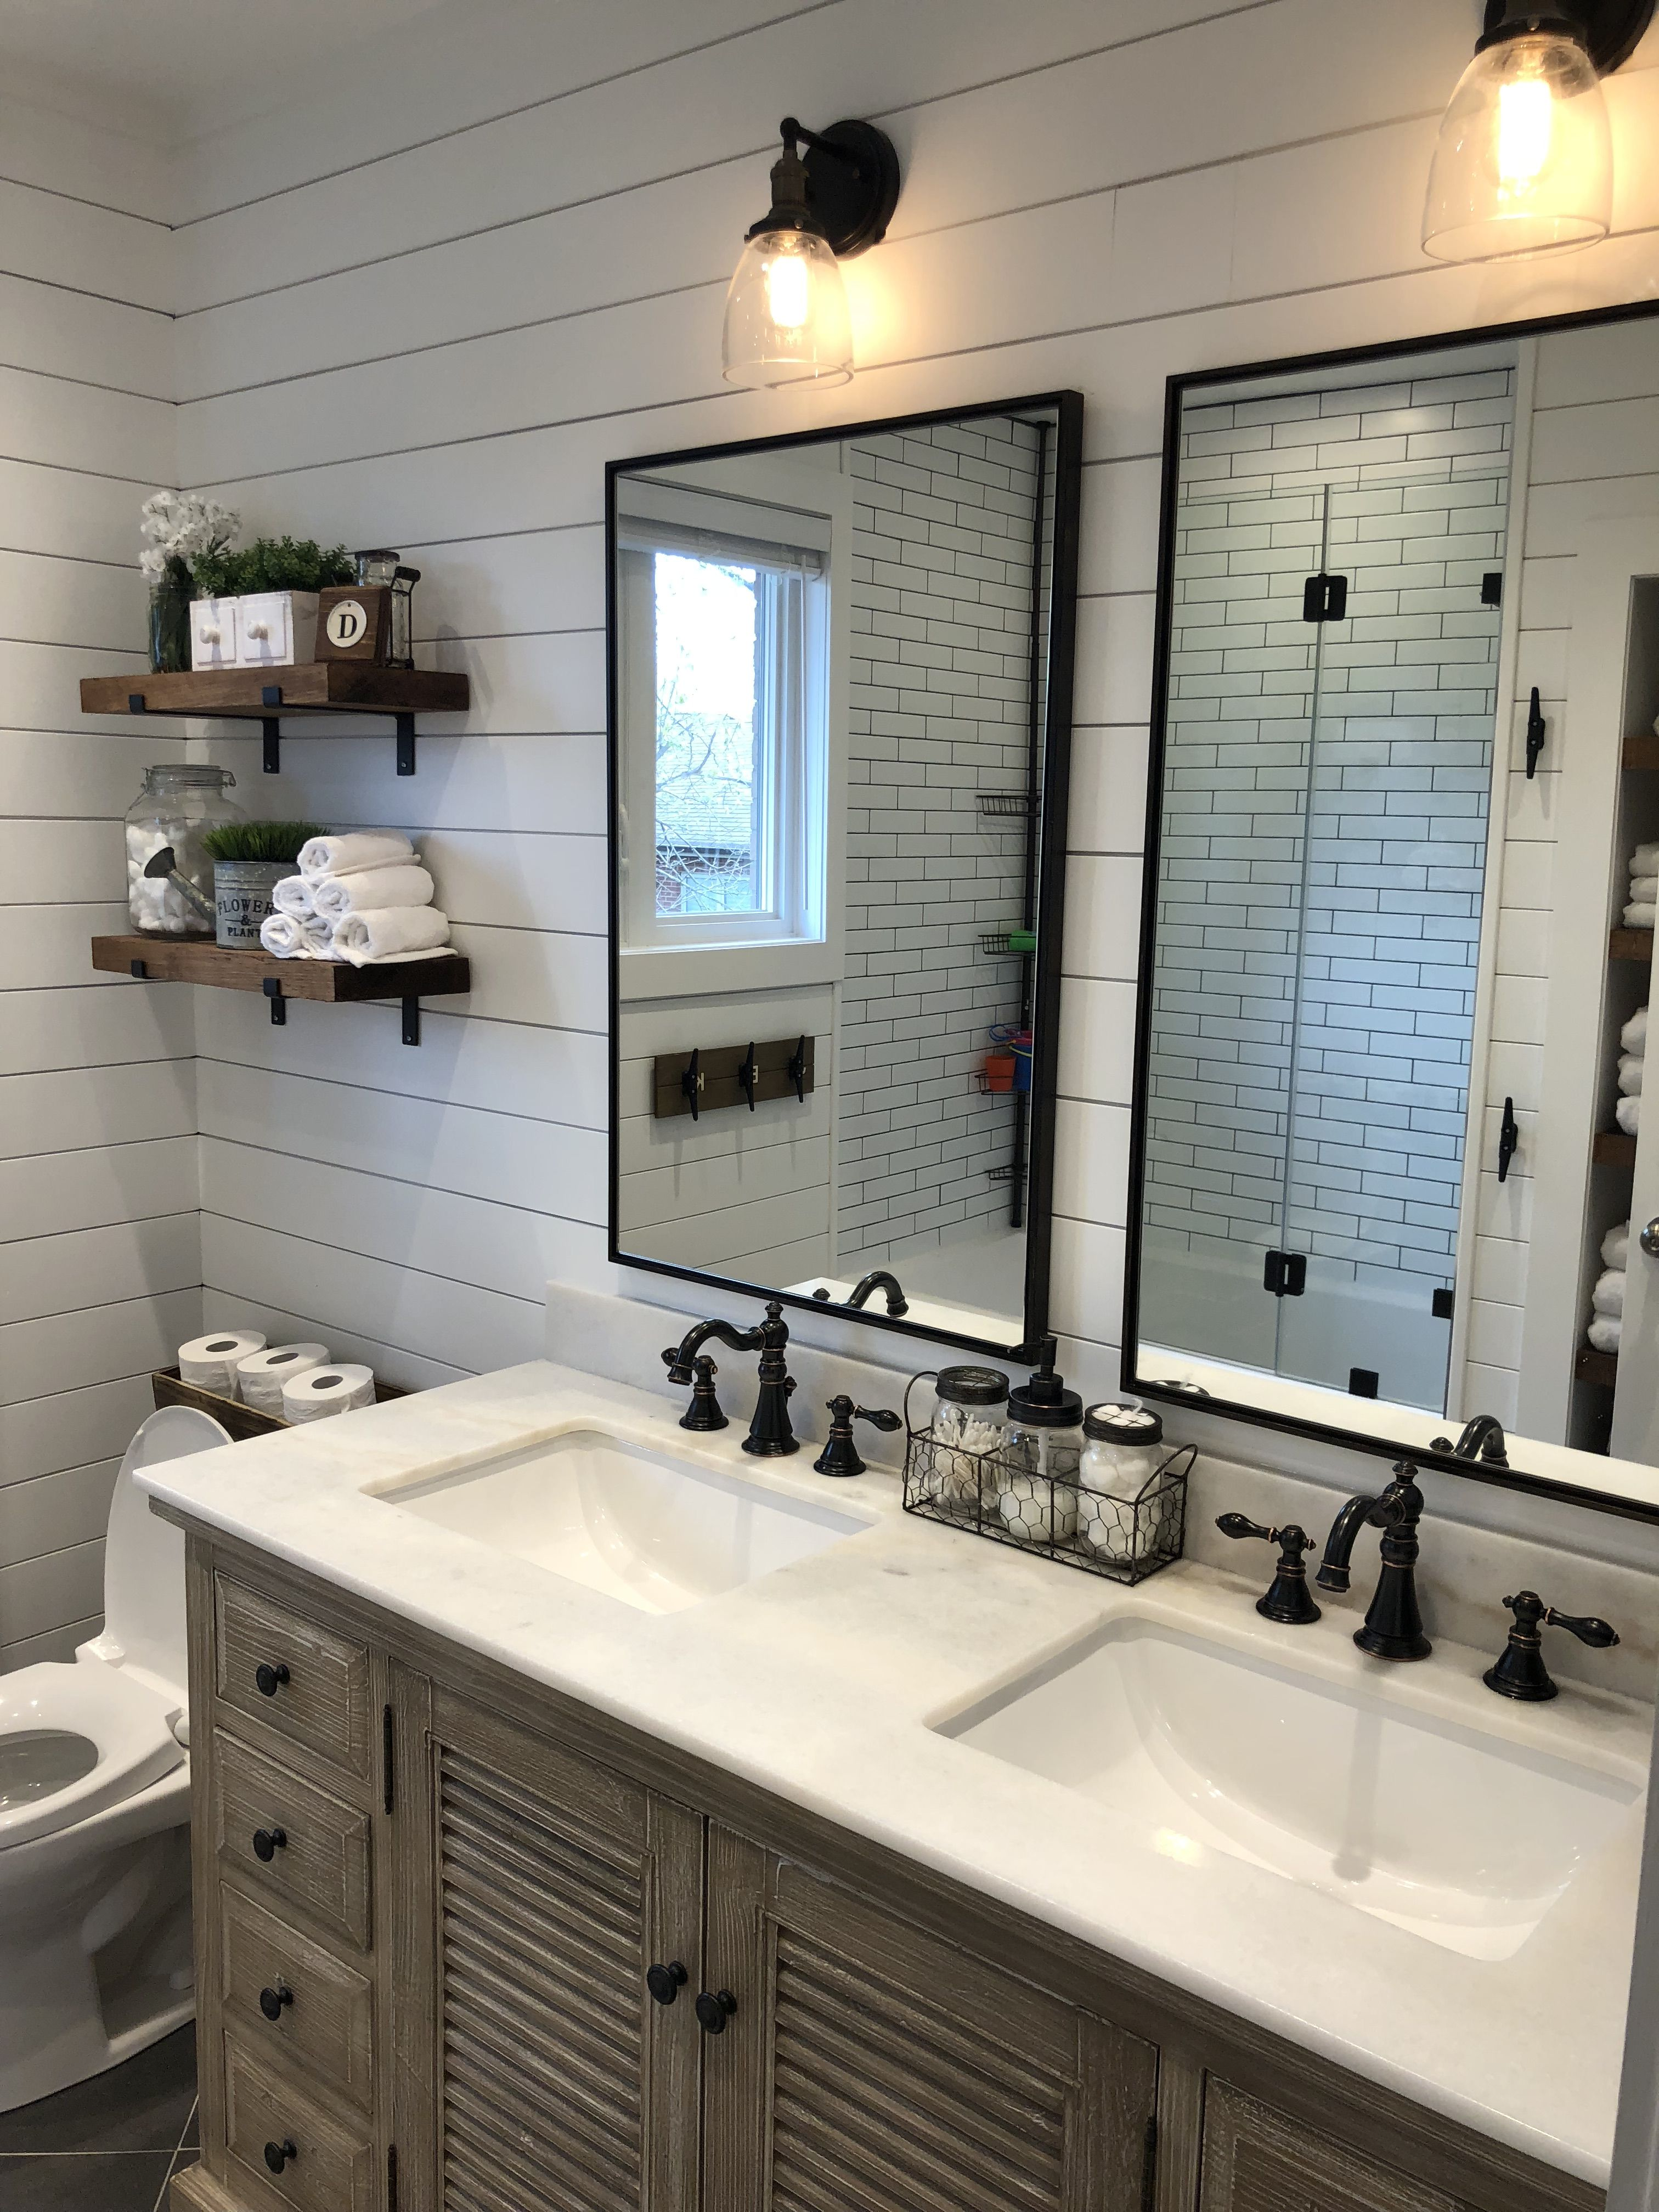 Modern Farmhouse Bathroom With Wood Vanity Shiplap Walls Oil Rubbed Bronze Accents Diy W Modern Farmhouse Bathroom Bathrooms Remodel Bronze Bathroom Faucets